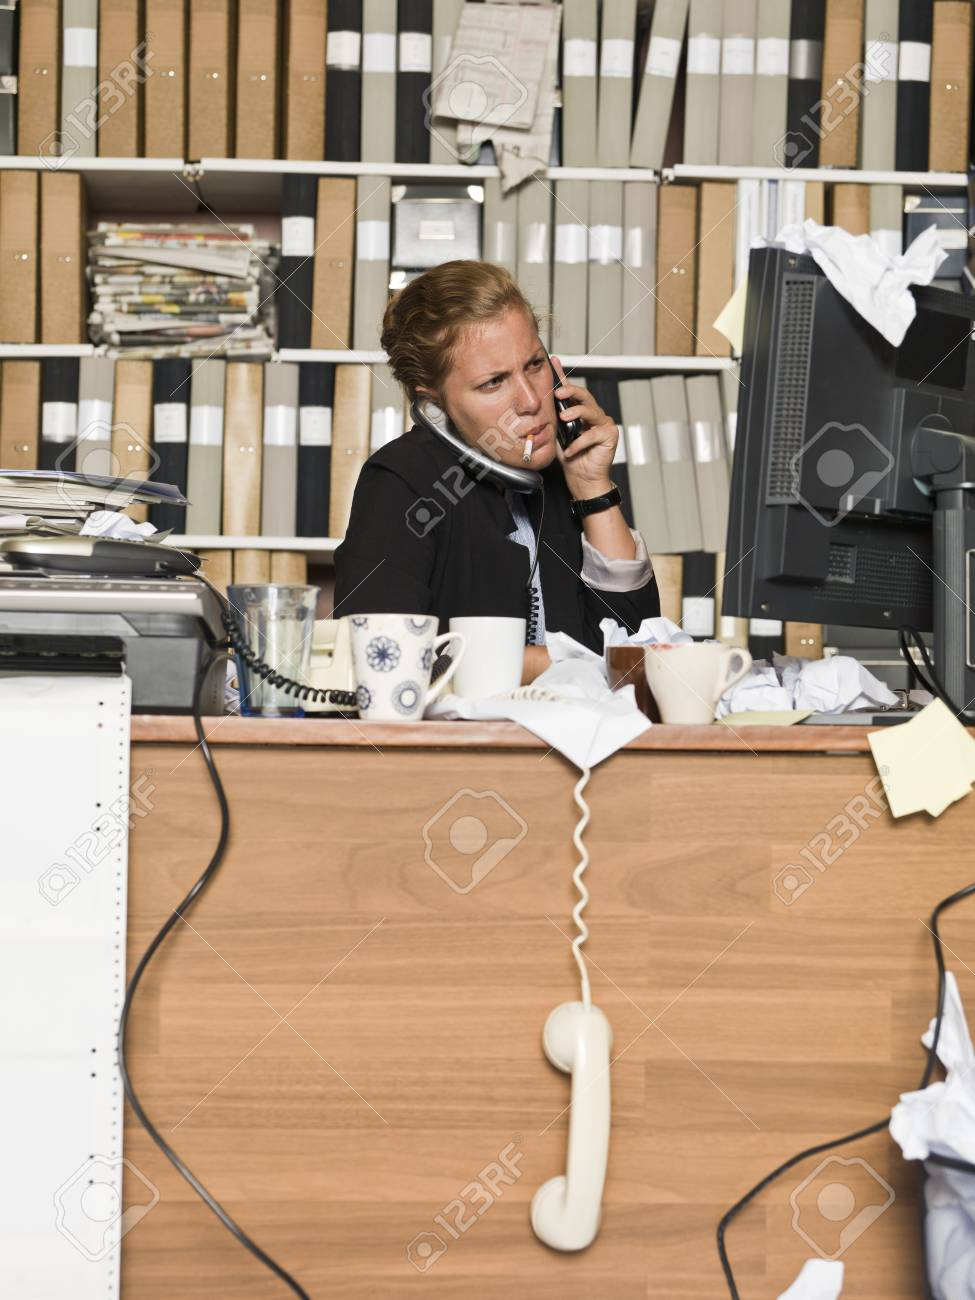 Busy Businesswomen smoking at the office Stock Photo - 14903433